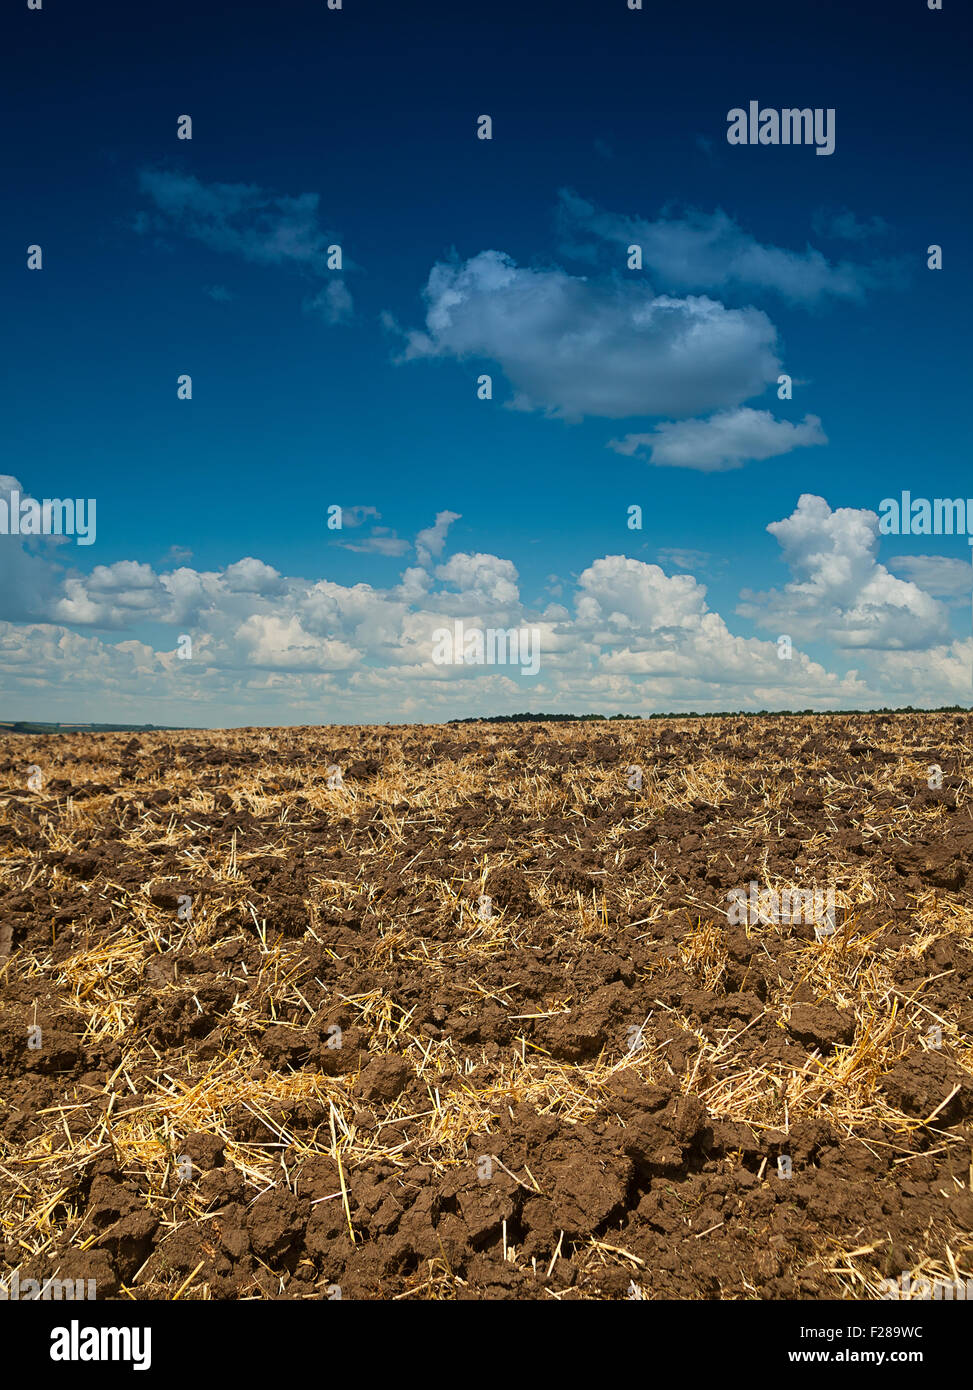 Plowed groung after wheat field with sky - Stock Image